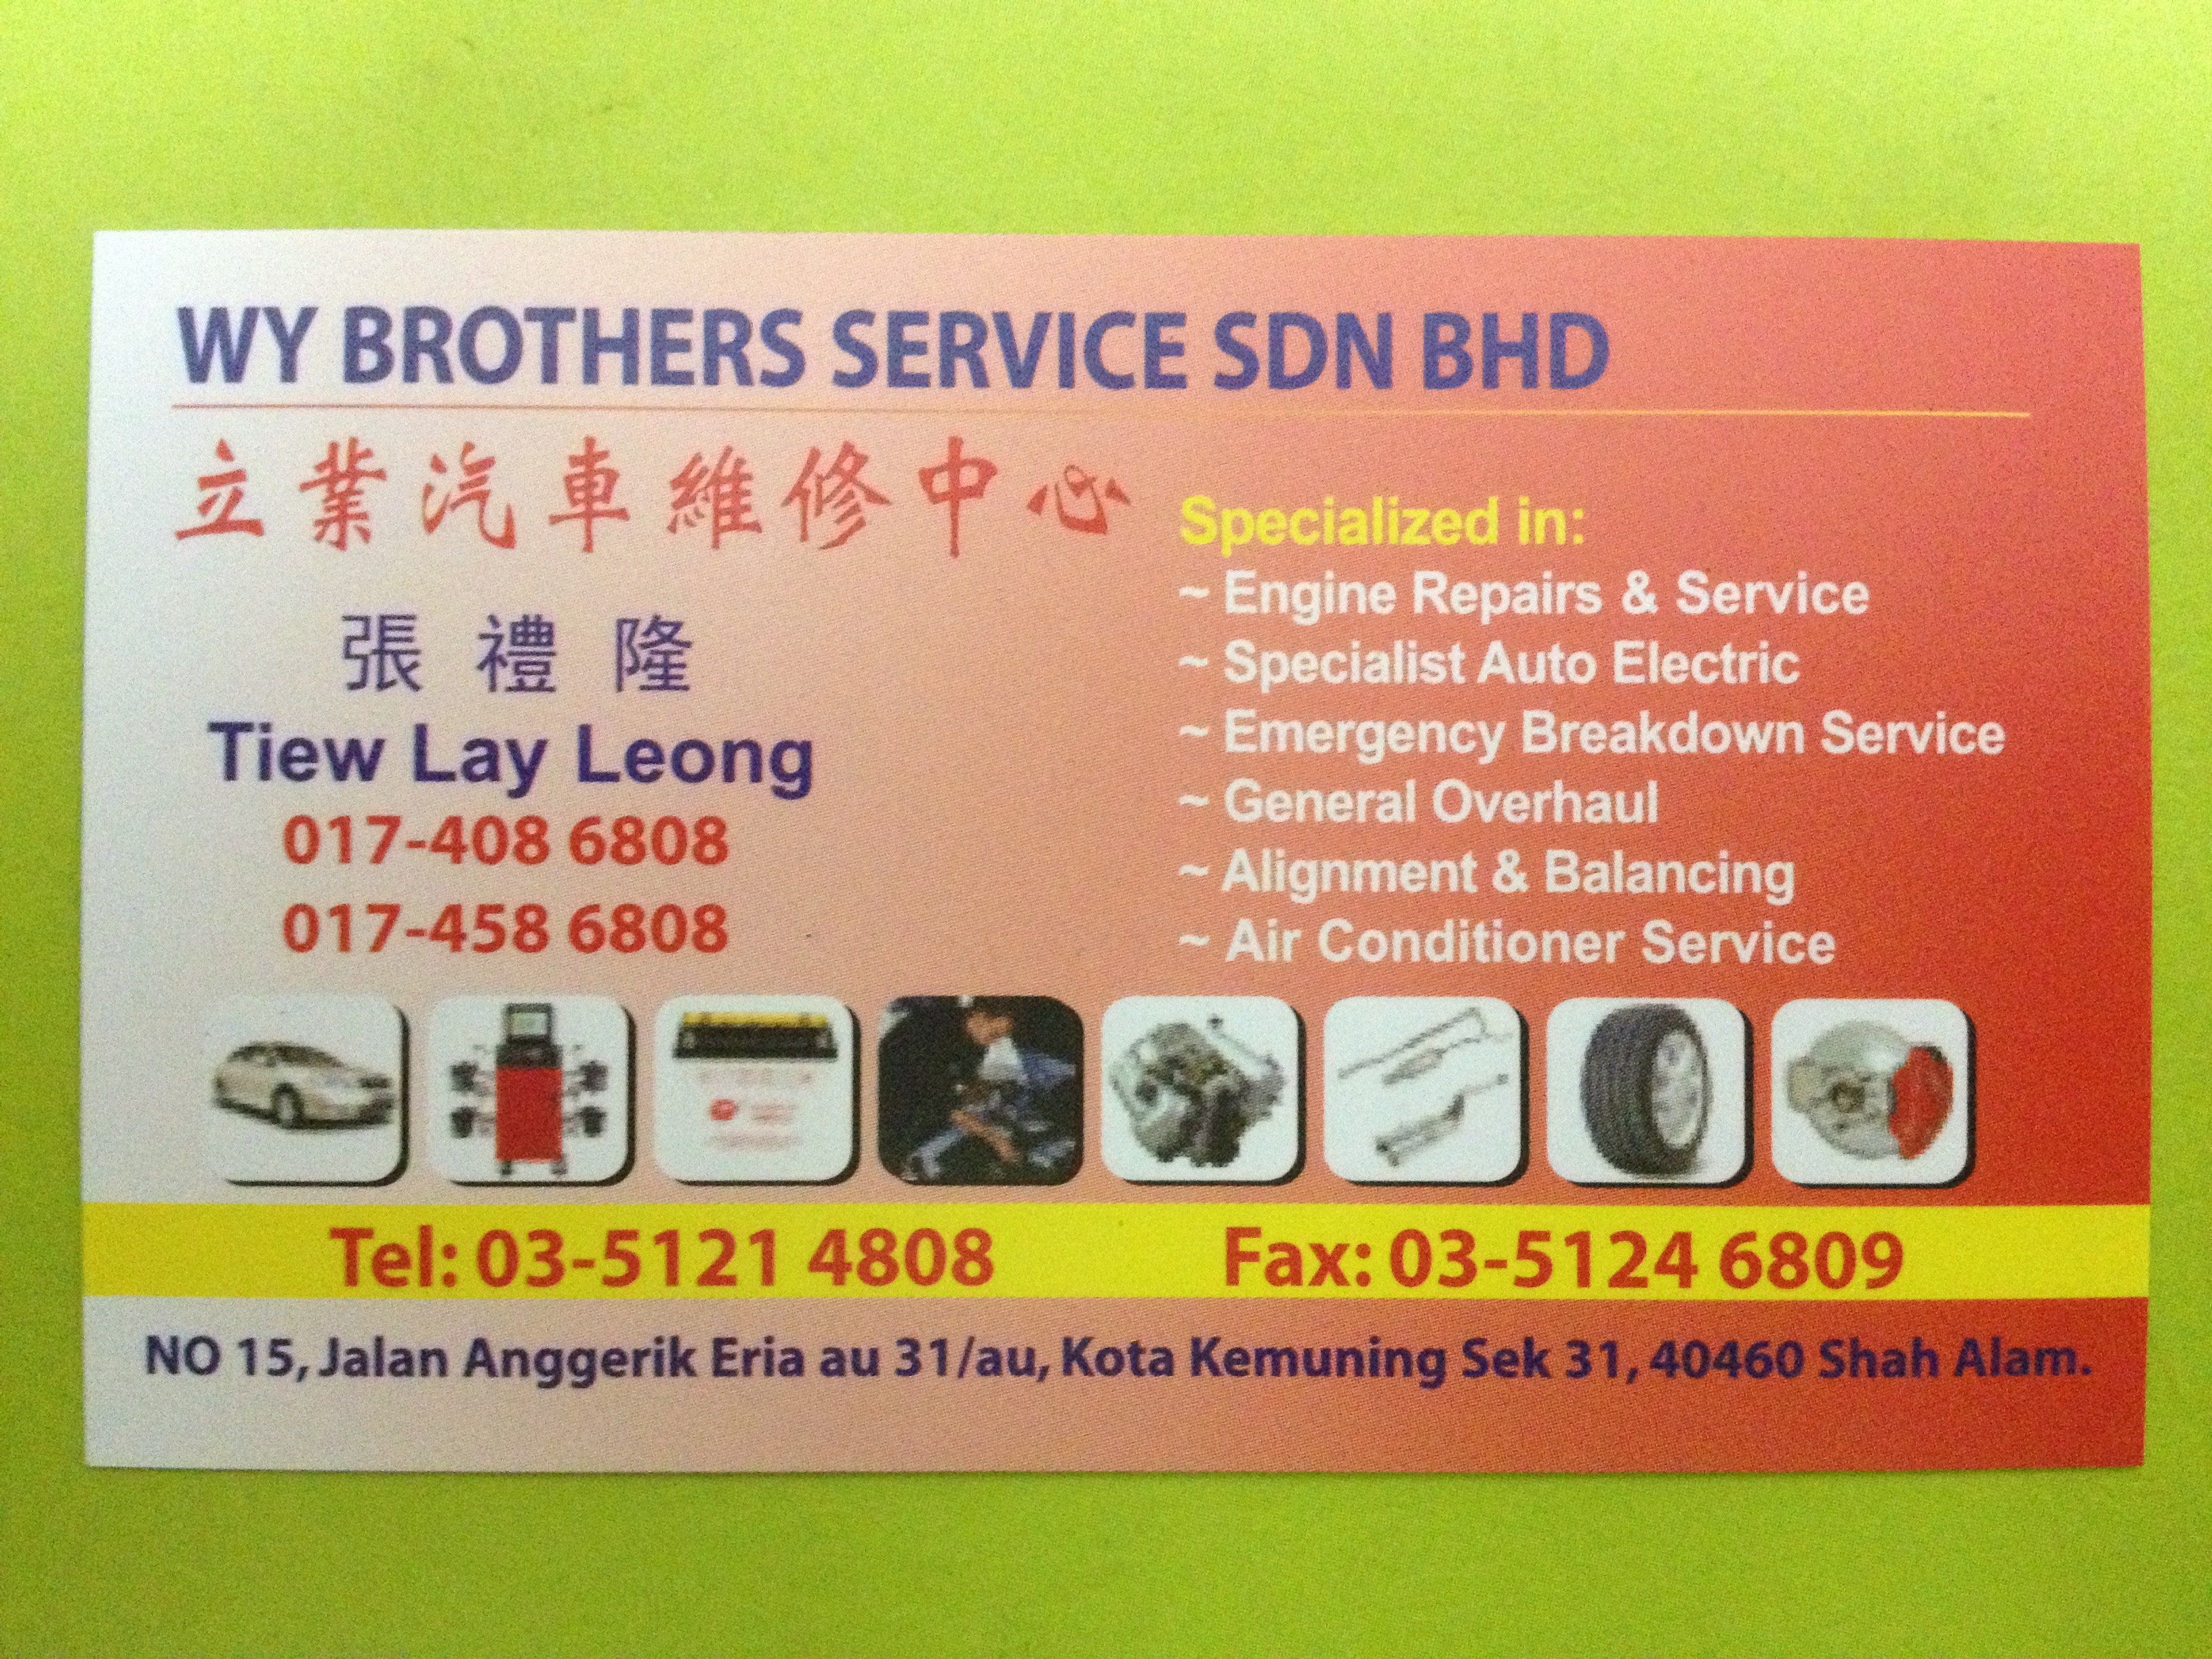 WY BROTHERS SERVICE SDN BHD